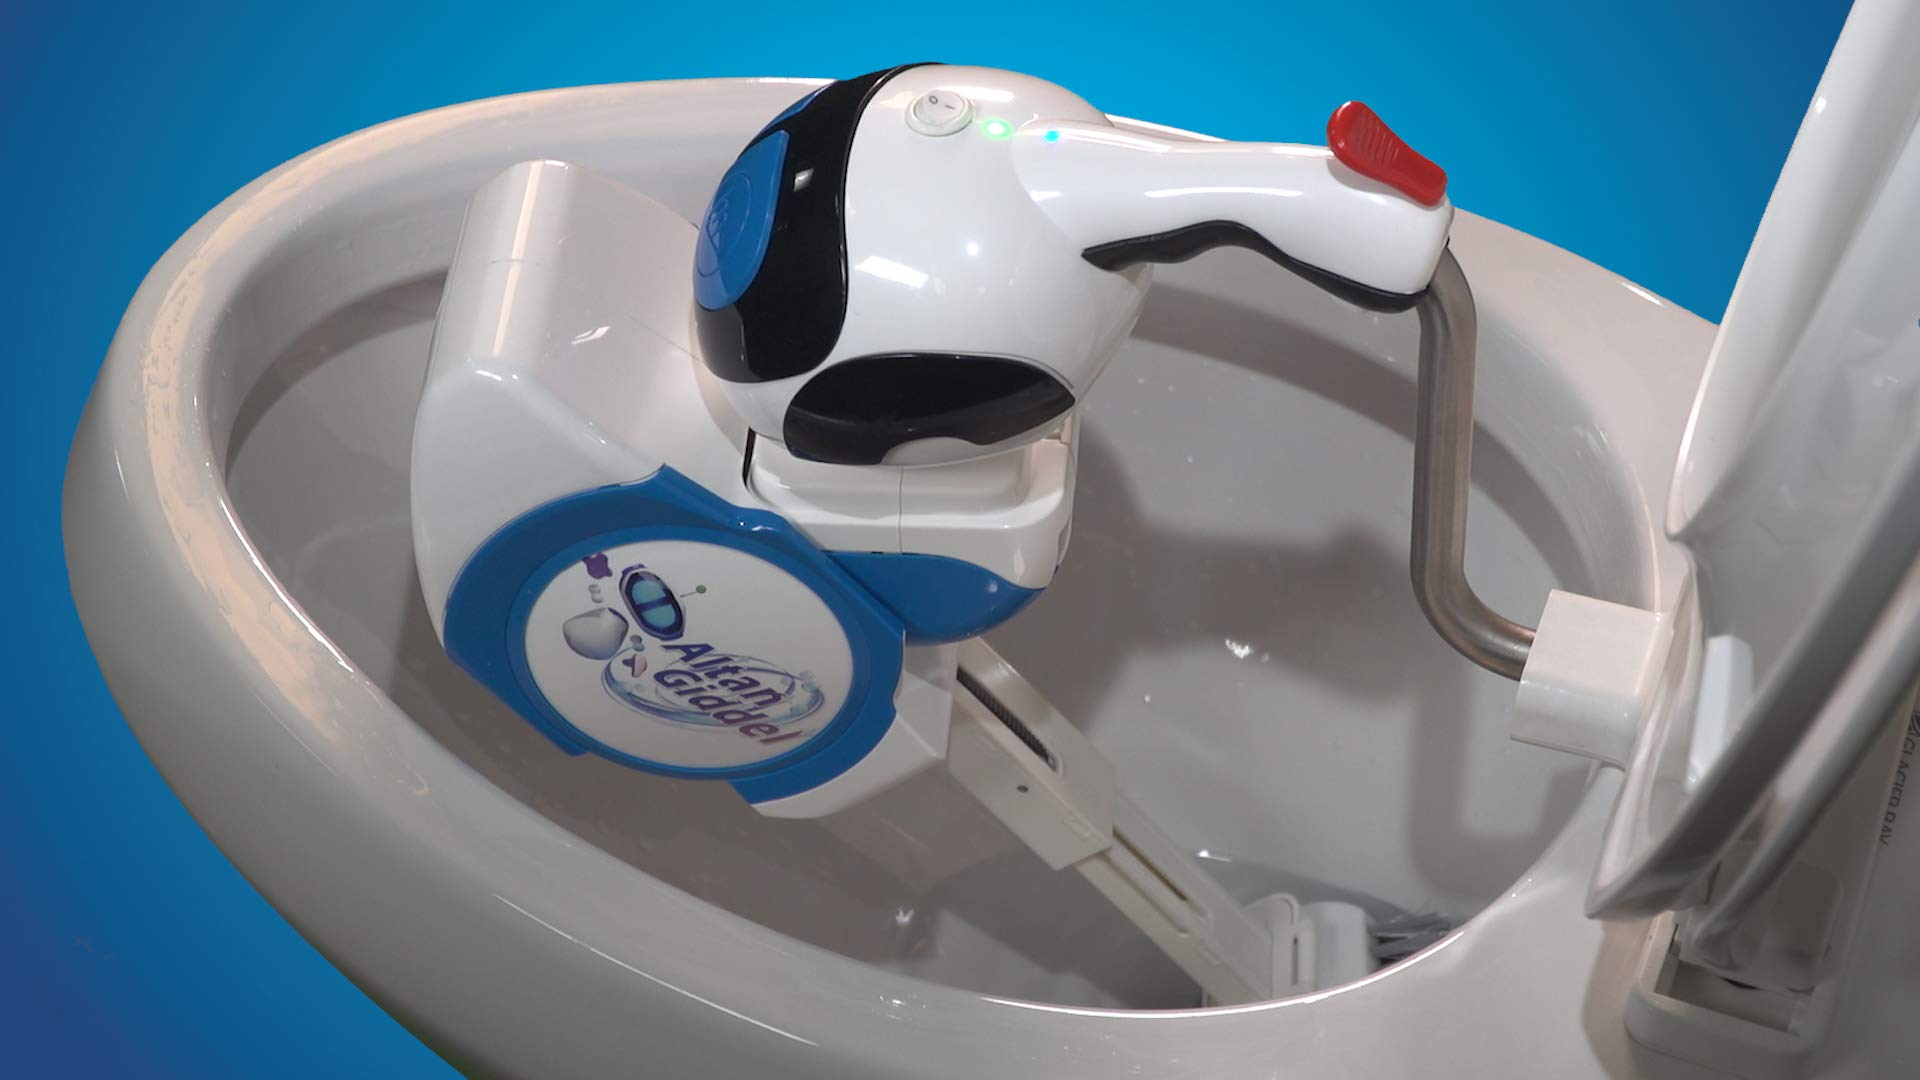 Giddel Toilet Cleaning Robot